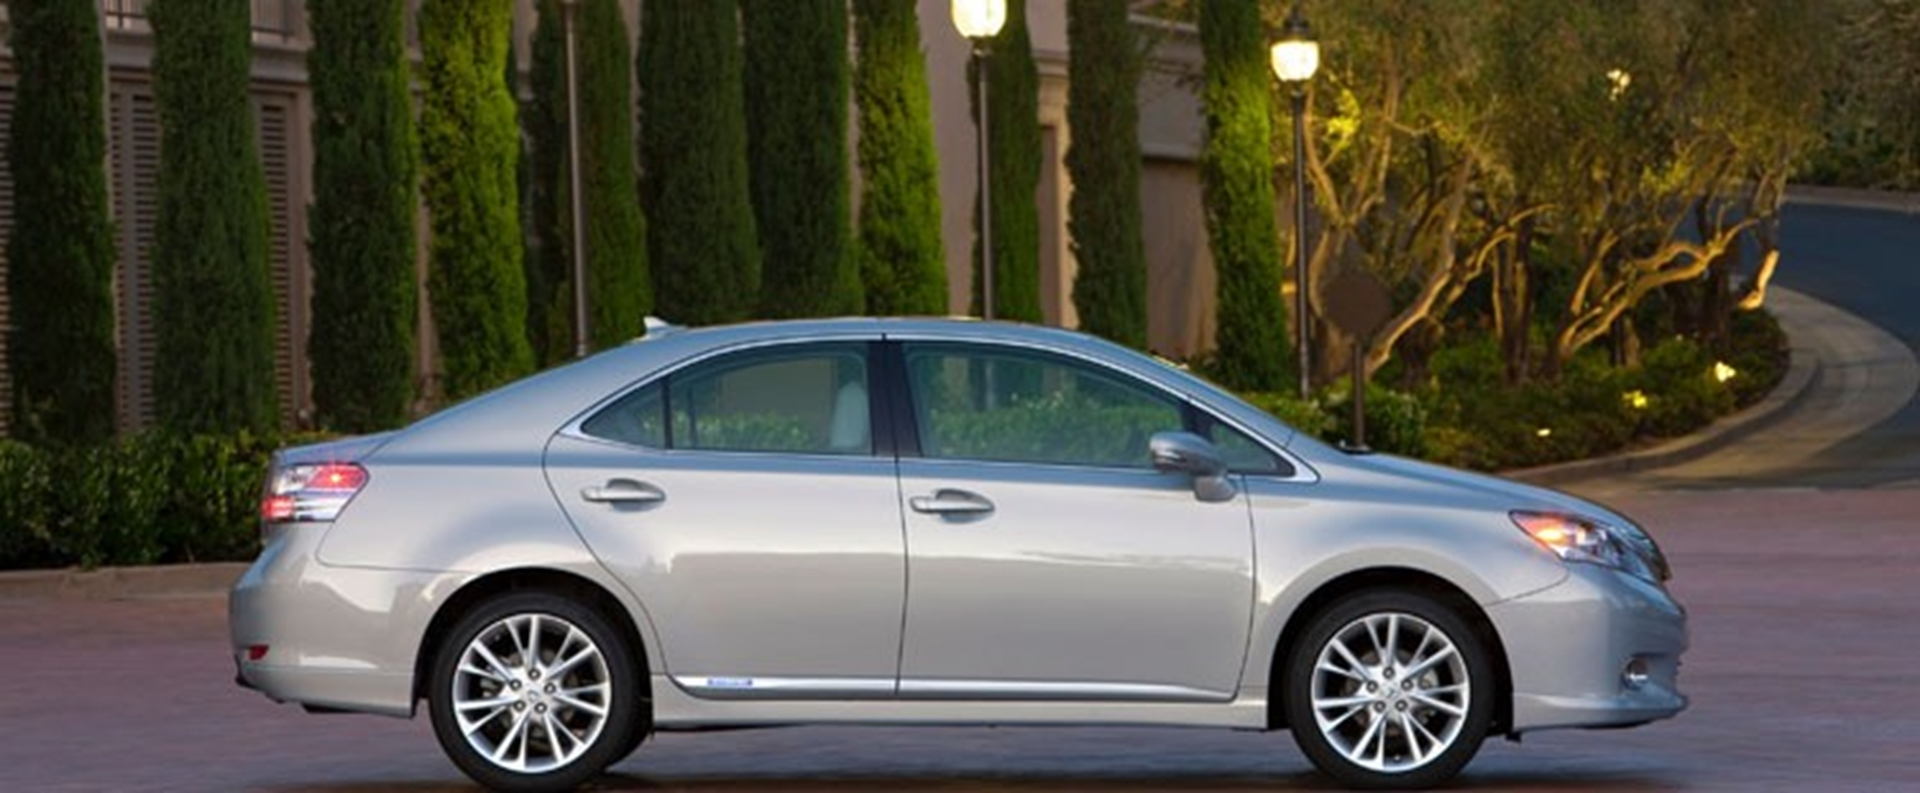 lexus hs 250h hybrid luxury sedan offers low emissions and comfort. Black Bedroom Furniture Sets. Home Design Ideas